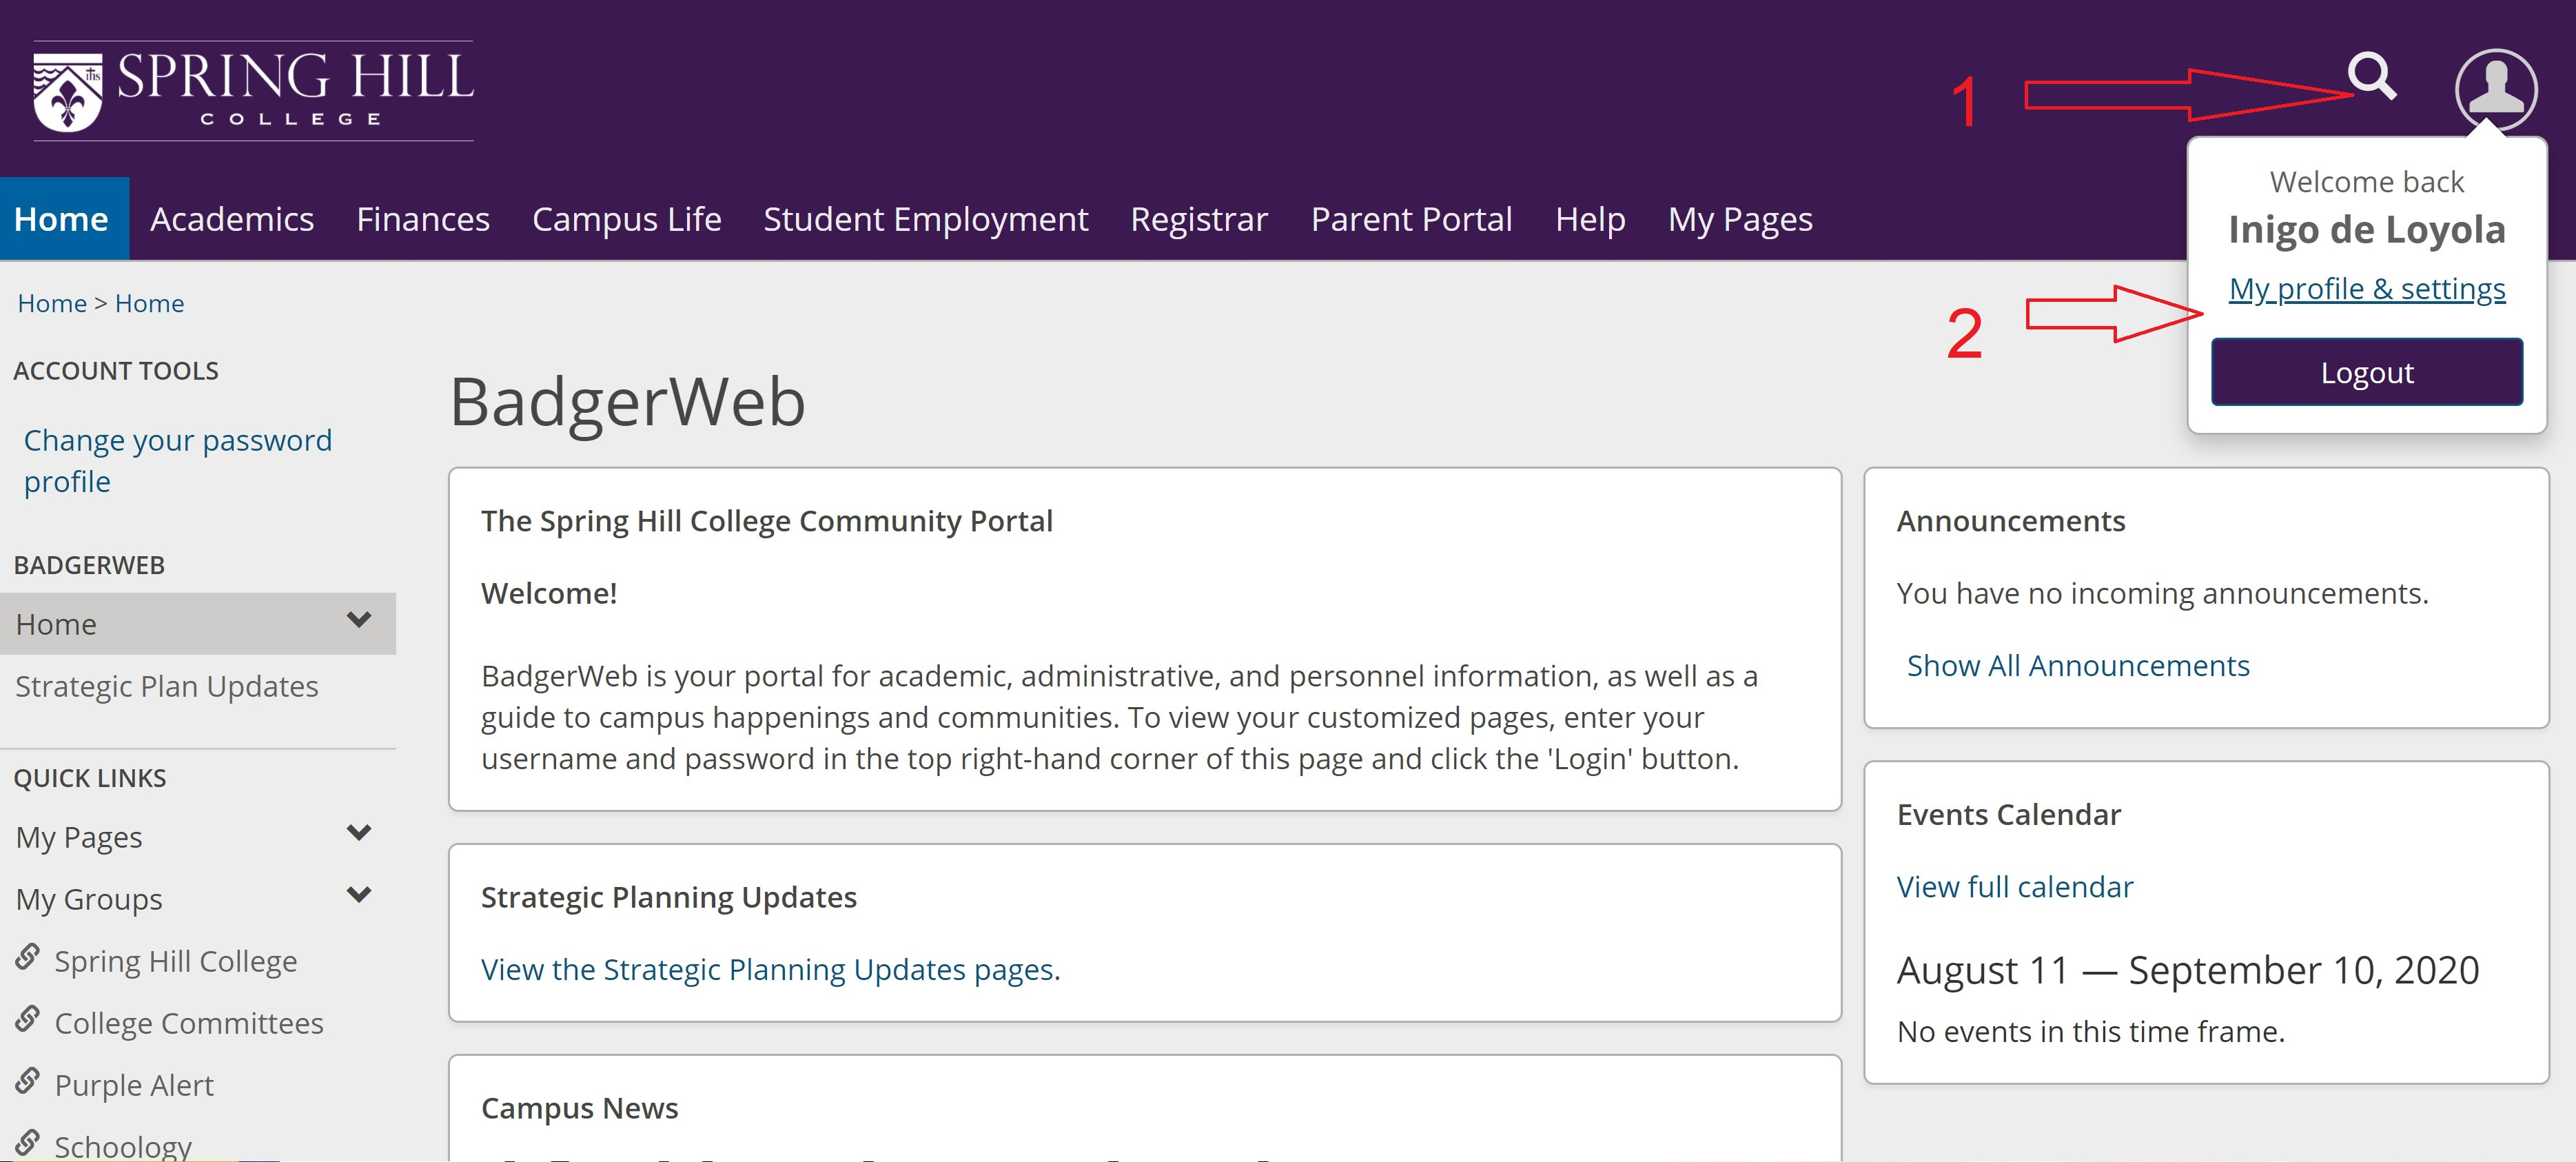 Sample student BadgerWeb welcome screen